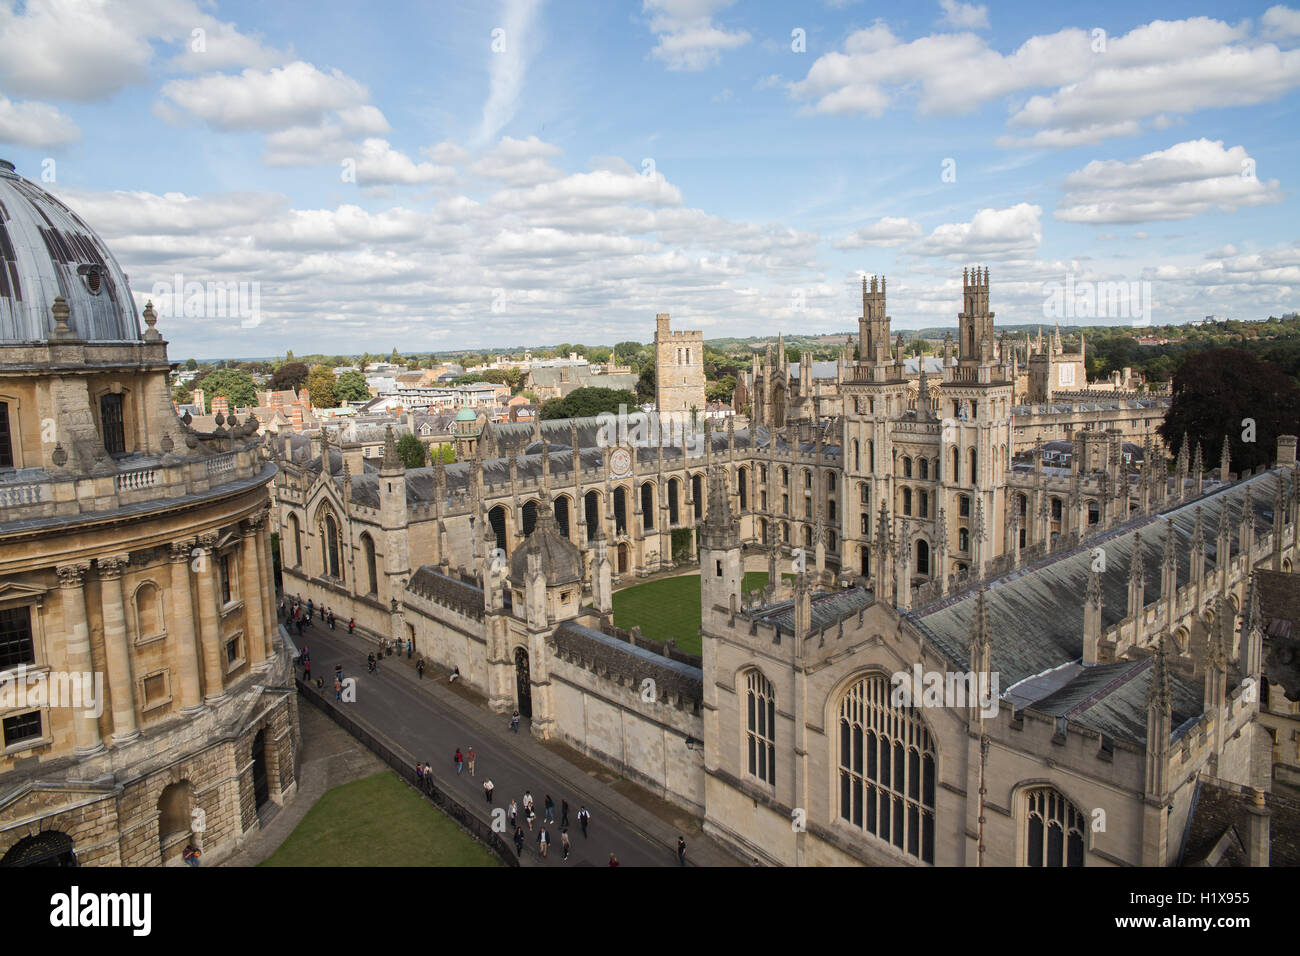 Oxford University aerial view - Stock Image